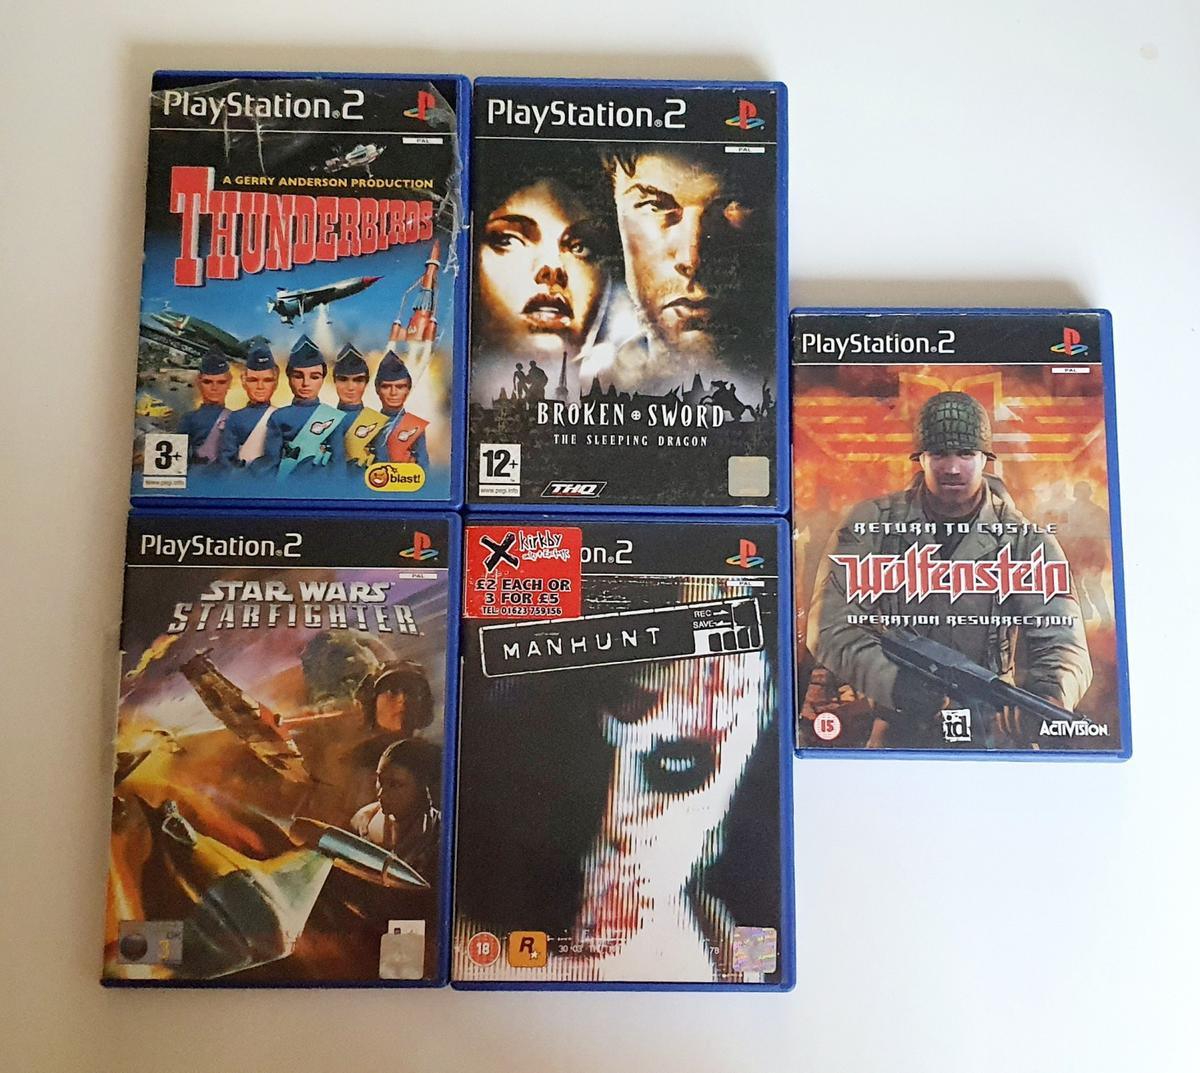 Assorted ps2 games. Lots of playstation 2 games. Note I am selling them separately. Pm me if You need any. I can send You proof of test before selling. In very good condition. 2 for 6£